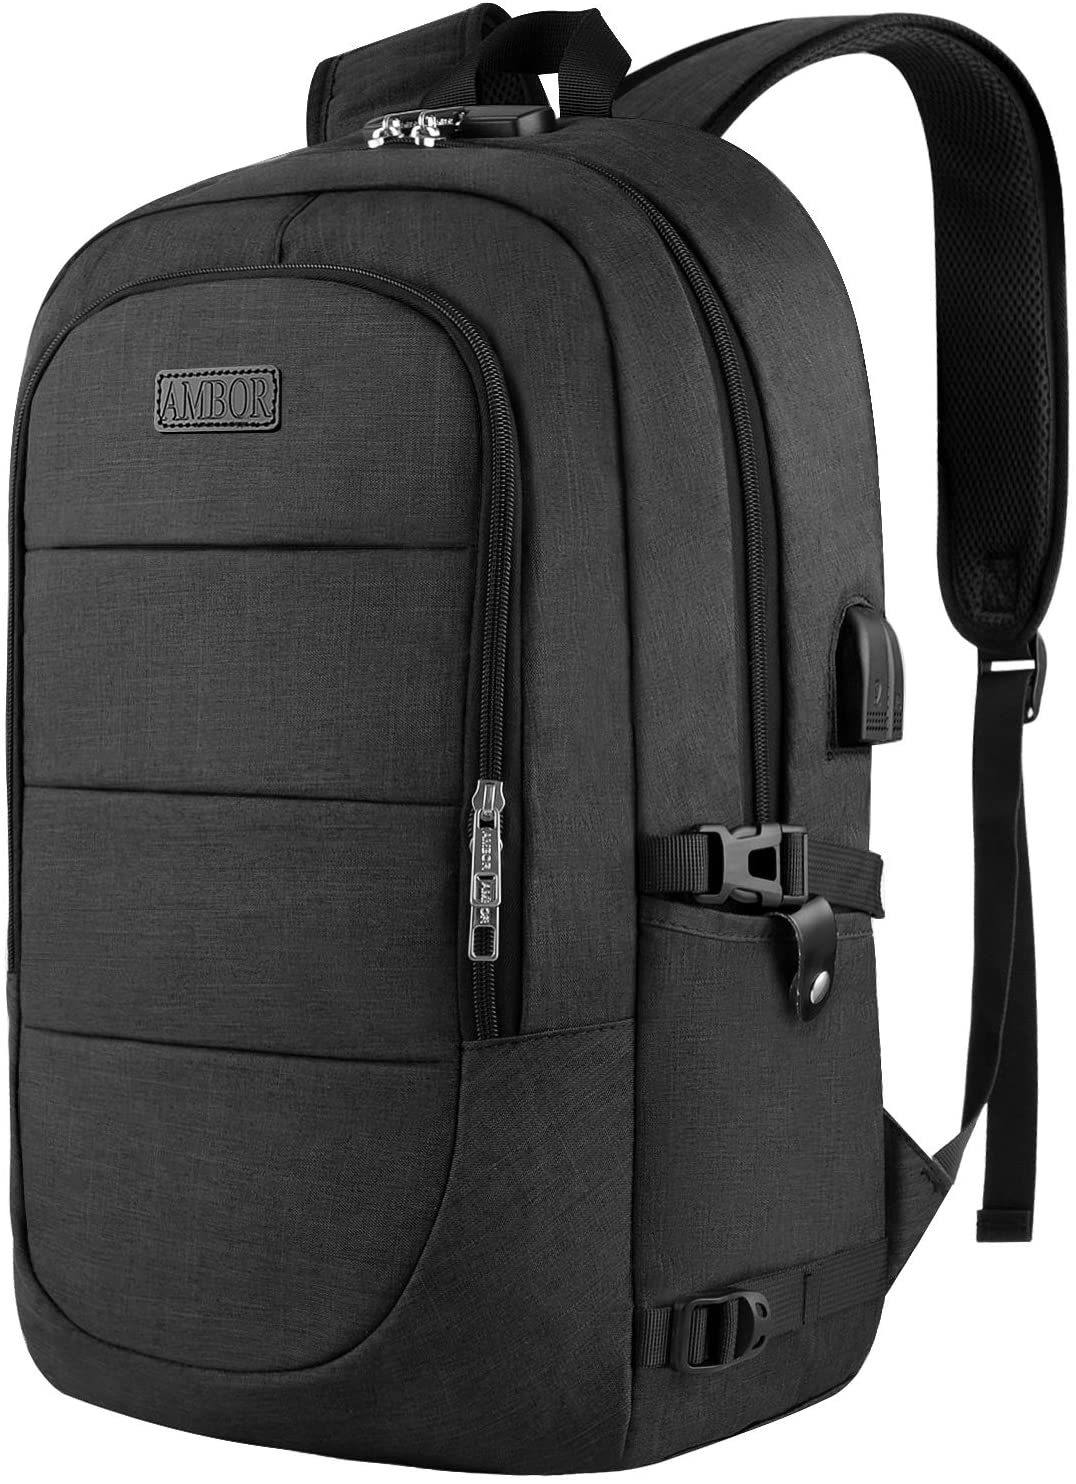 "Travel Laptop Backpack, Anti Theft Business Laptop Backpack with USB Charging Port and Headphone Interface fits Under 17.3"" Laptop, for College Student Work Men & Women"